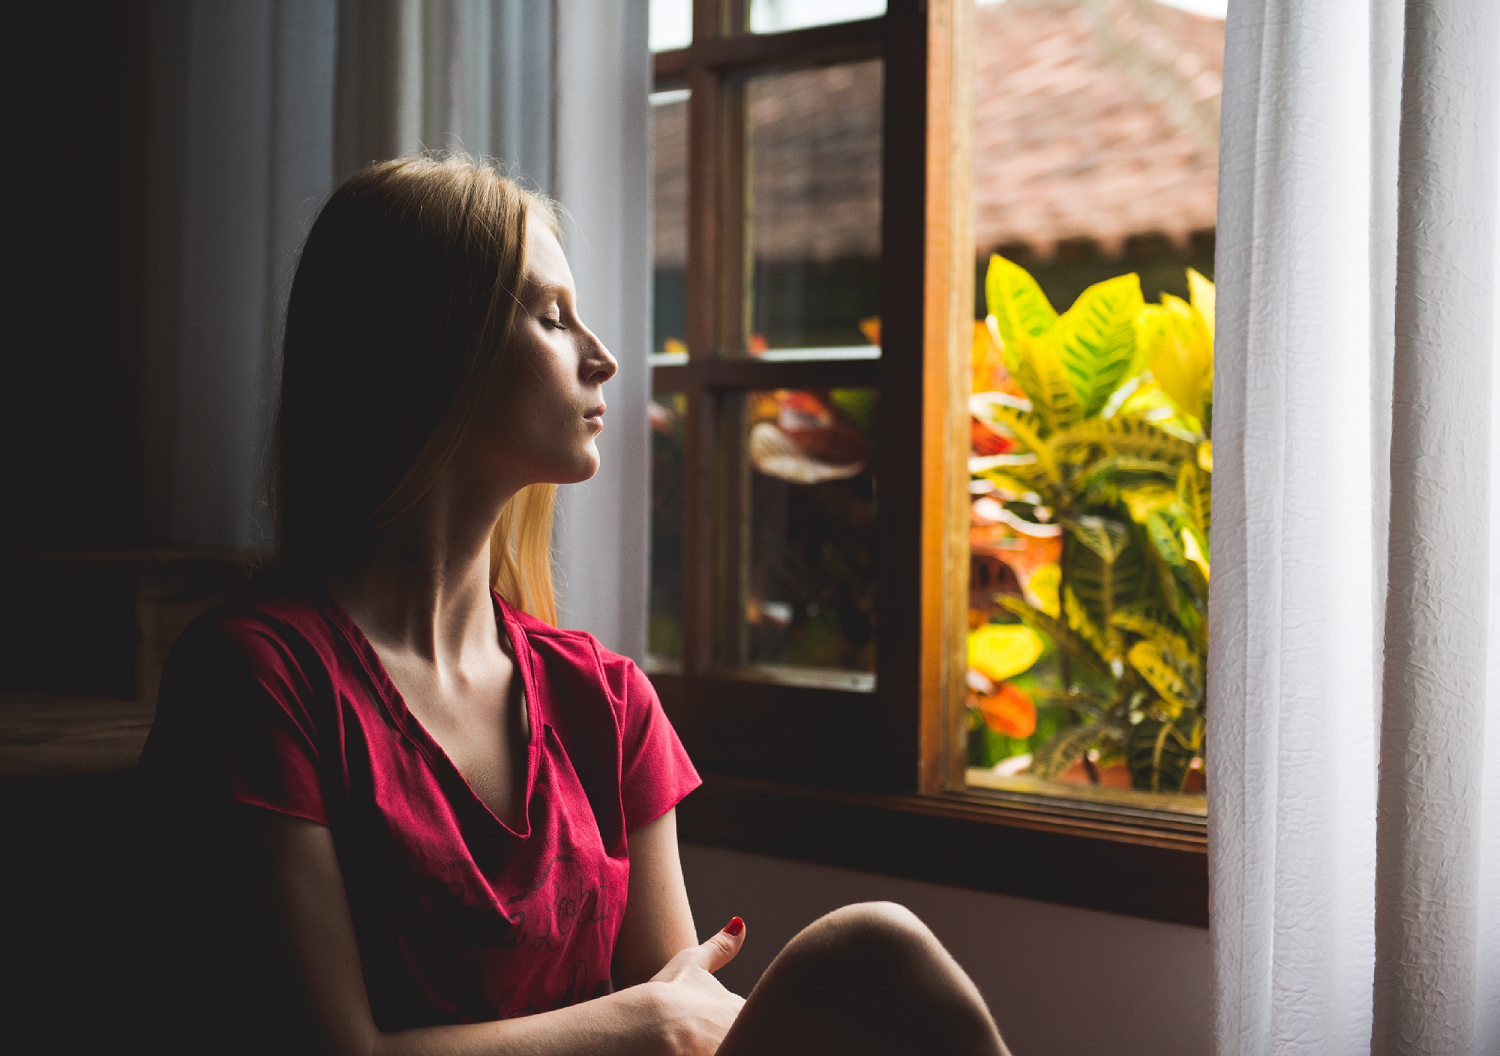 Woman facing towards open window with eyes closed